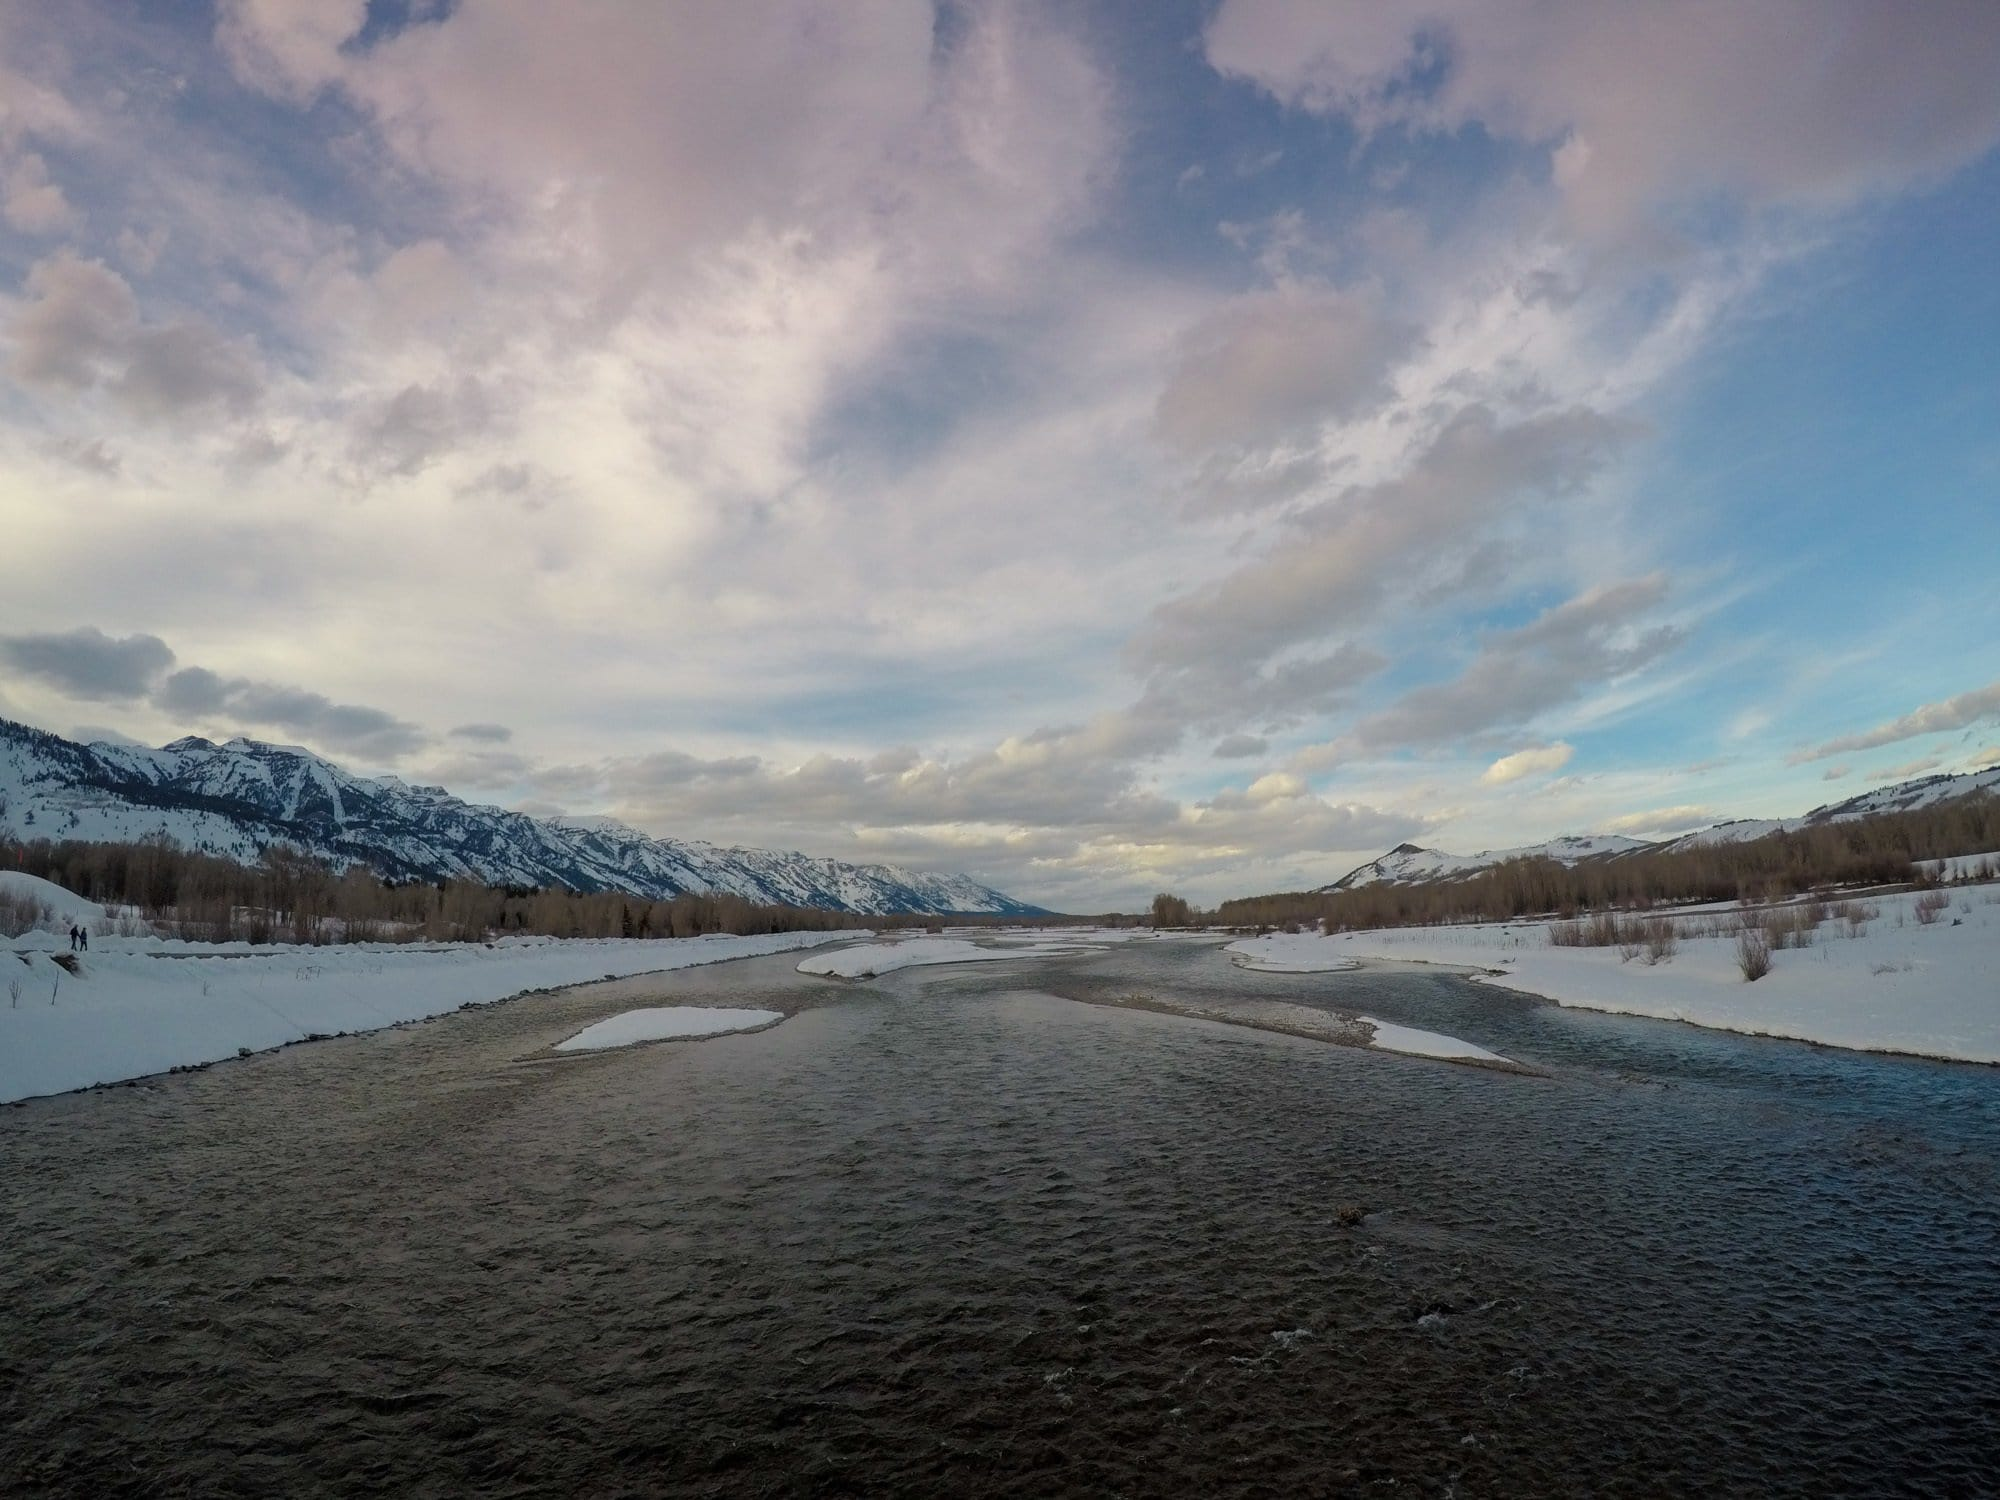 Bridge over the Snake River in Jackson, Wyoming